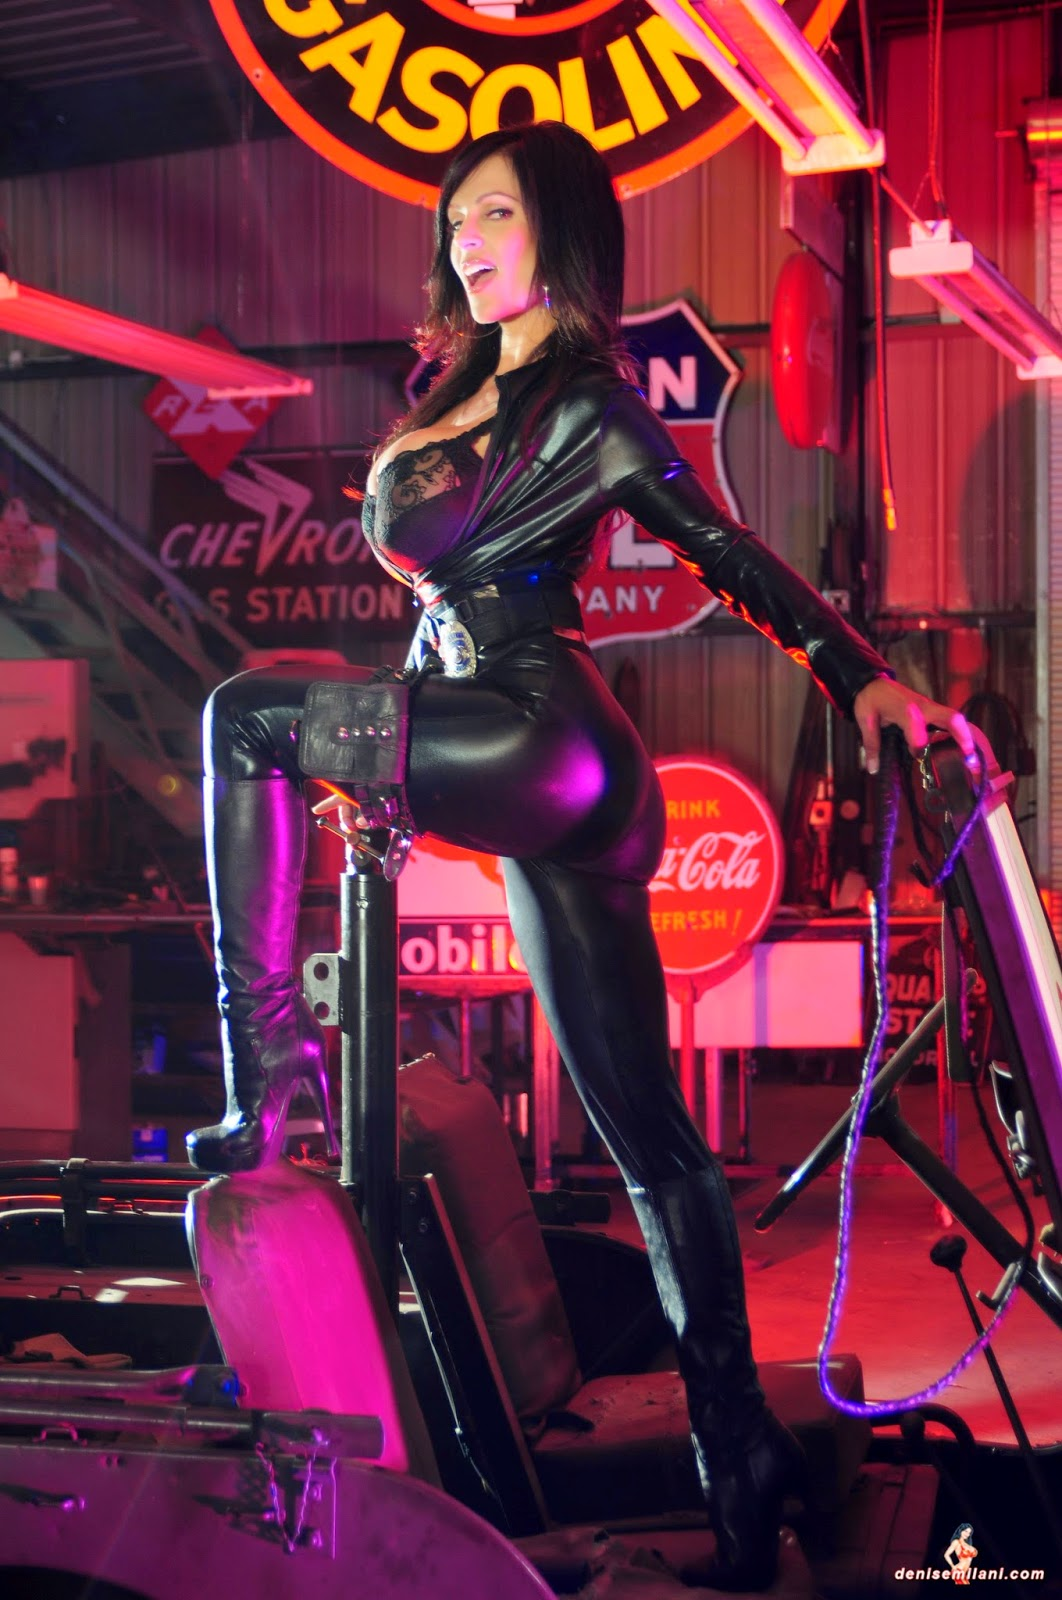 Salman Khan Full Hd Wallpaper Global Pictures Gallery Denise Milani In A Tight Leather